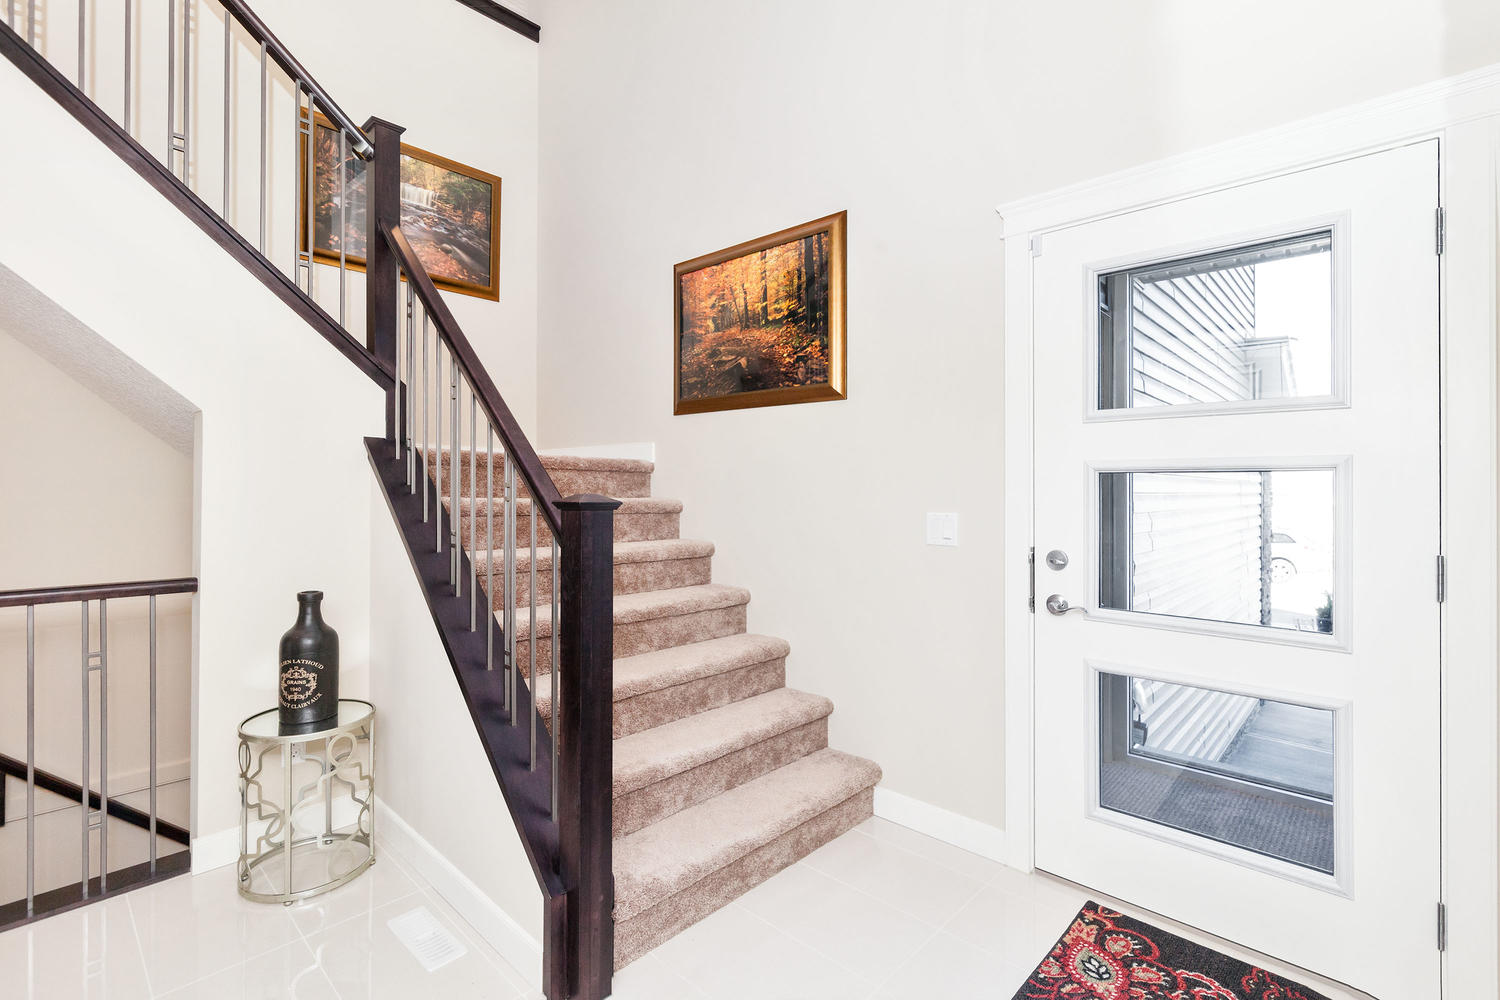 the glass paneled front entrance door and staircase a pacesetter front drive home.